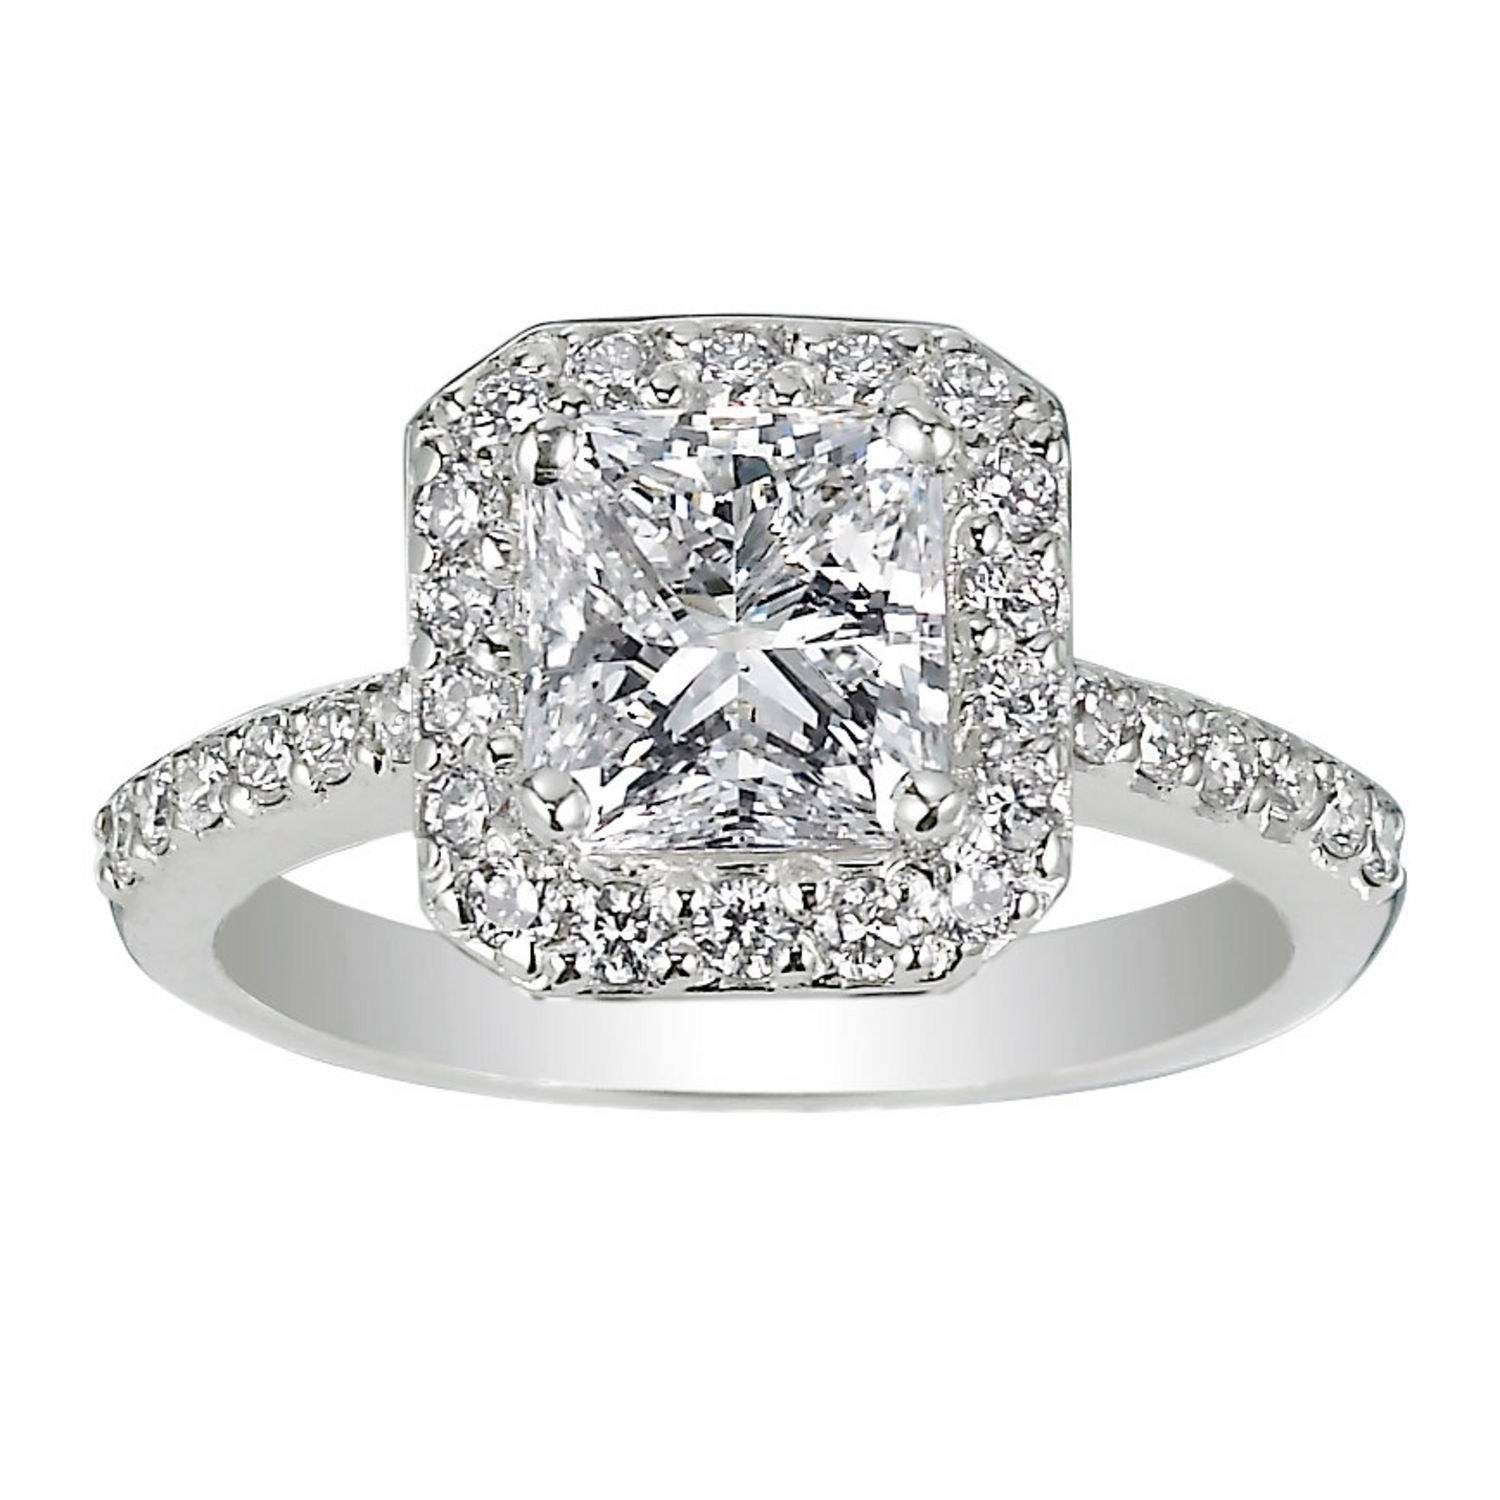 62 Diamond Engagement Rings Under $5,000 | Glamour Intended For Diamond Wedding Rings (Gallery 3 of 15)